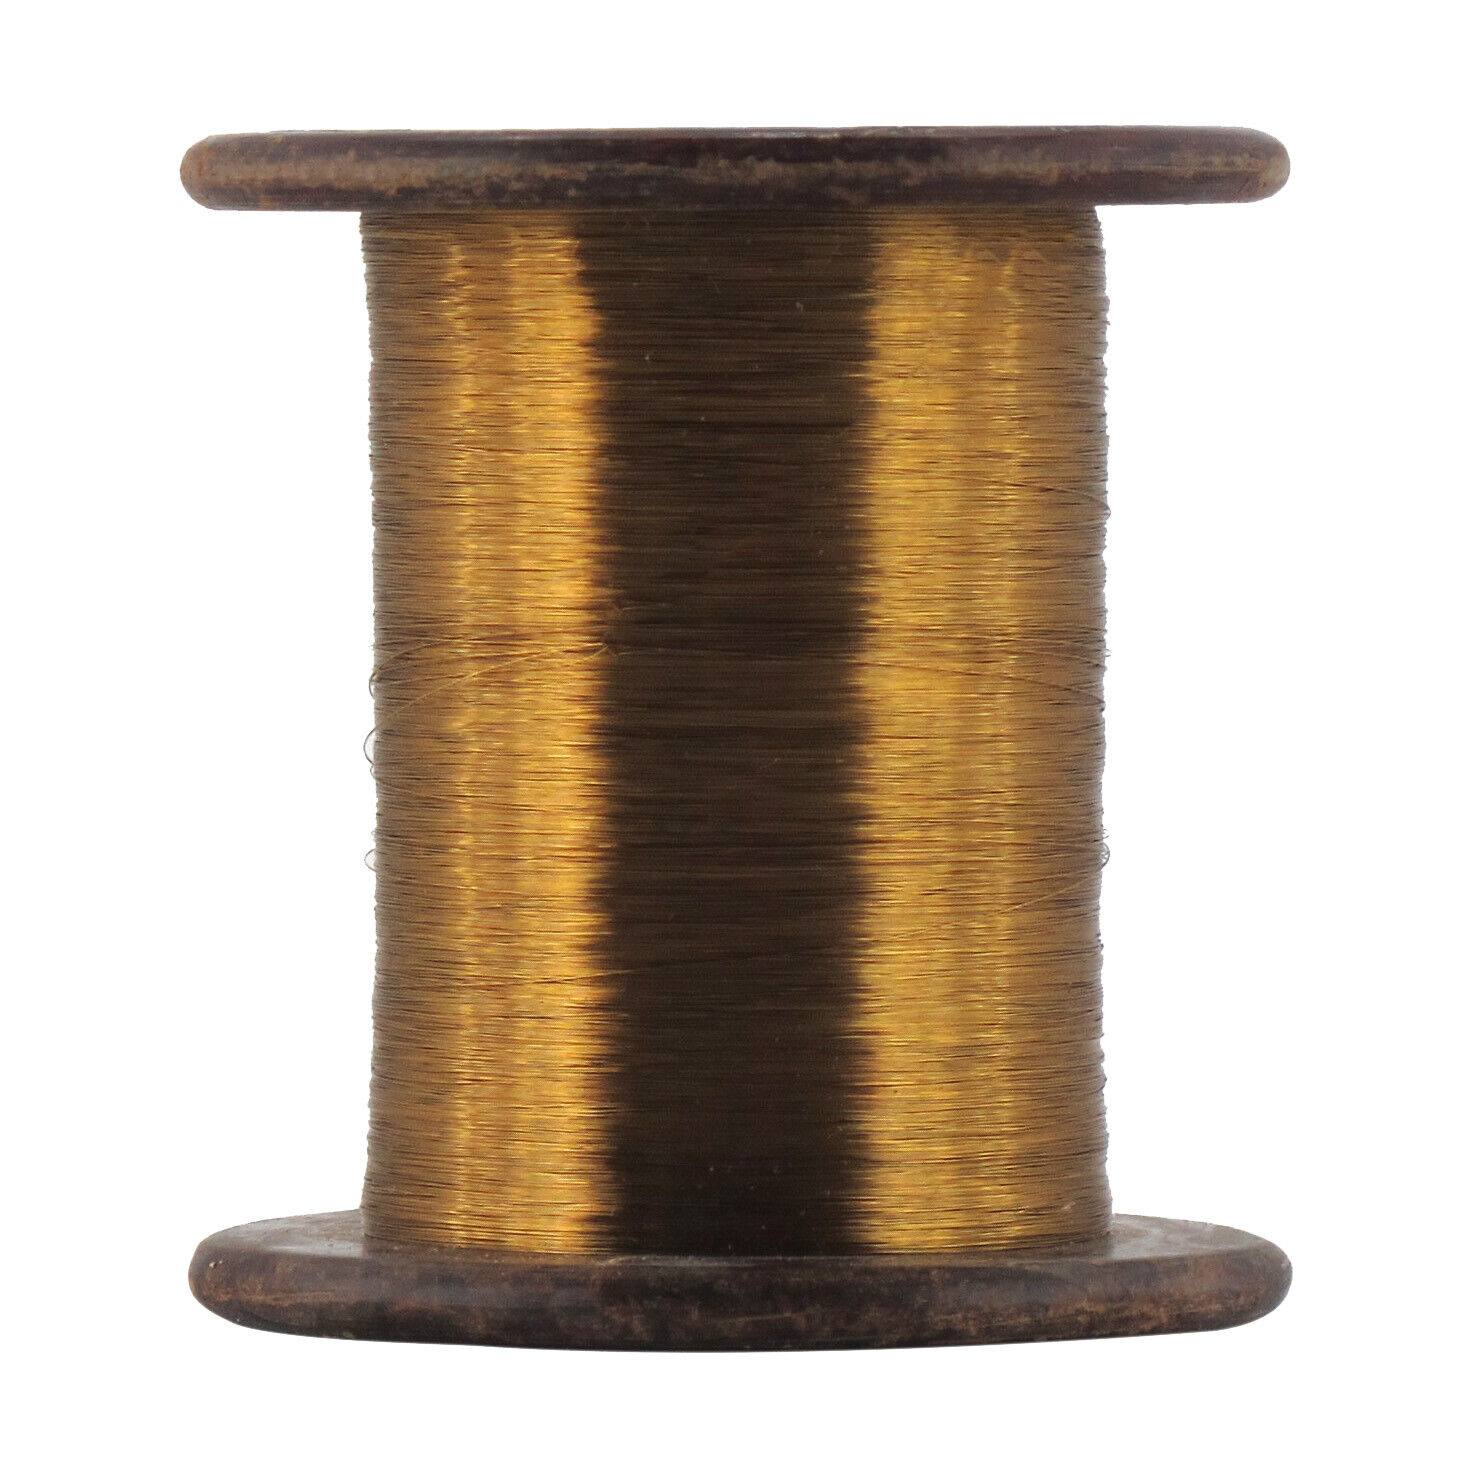 PEMS 0.05mm - 0.8mm Enameled Copper Wire Constant Coil Winding Resistance 1 kg